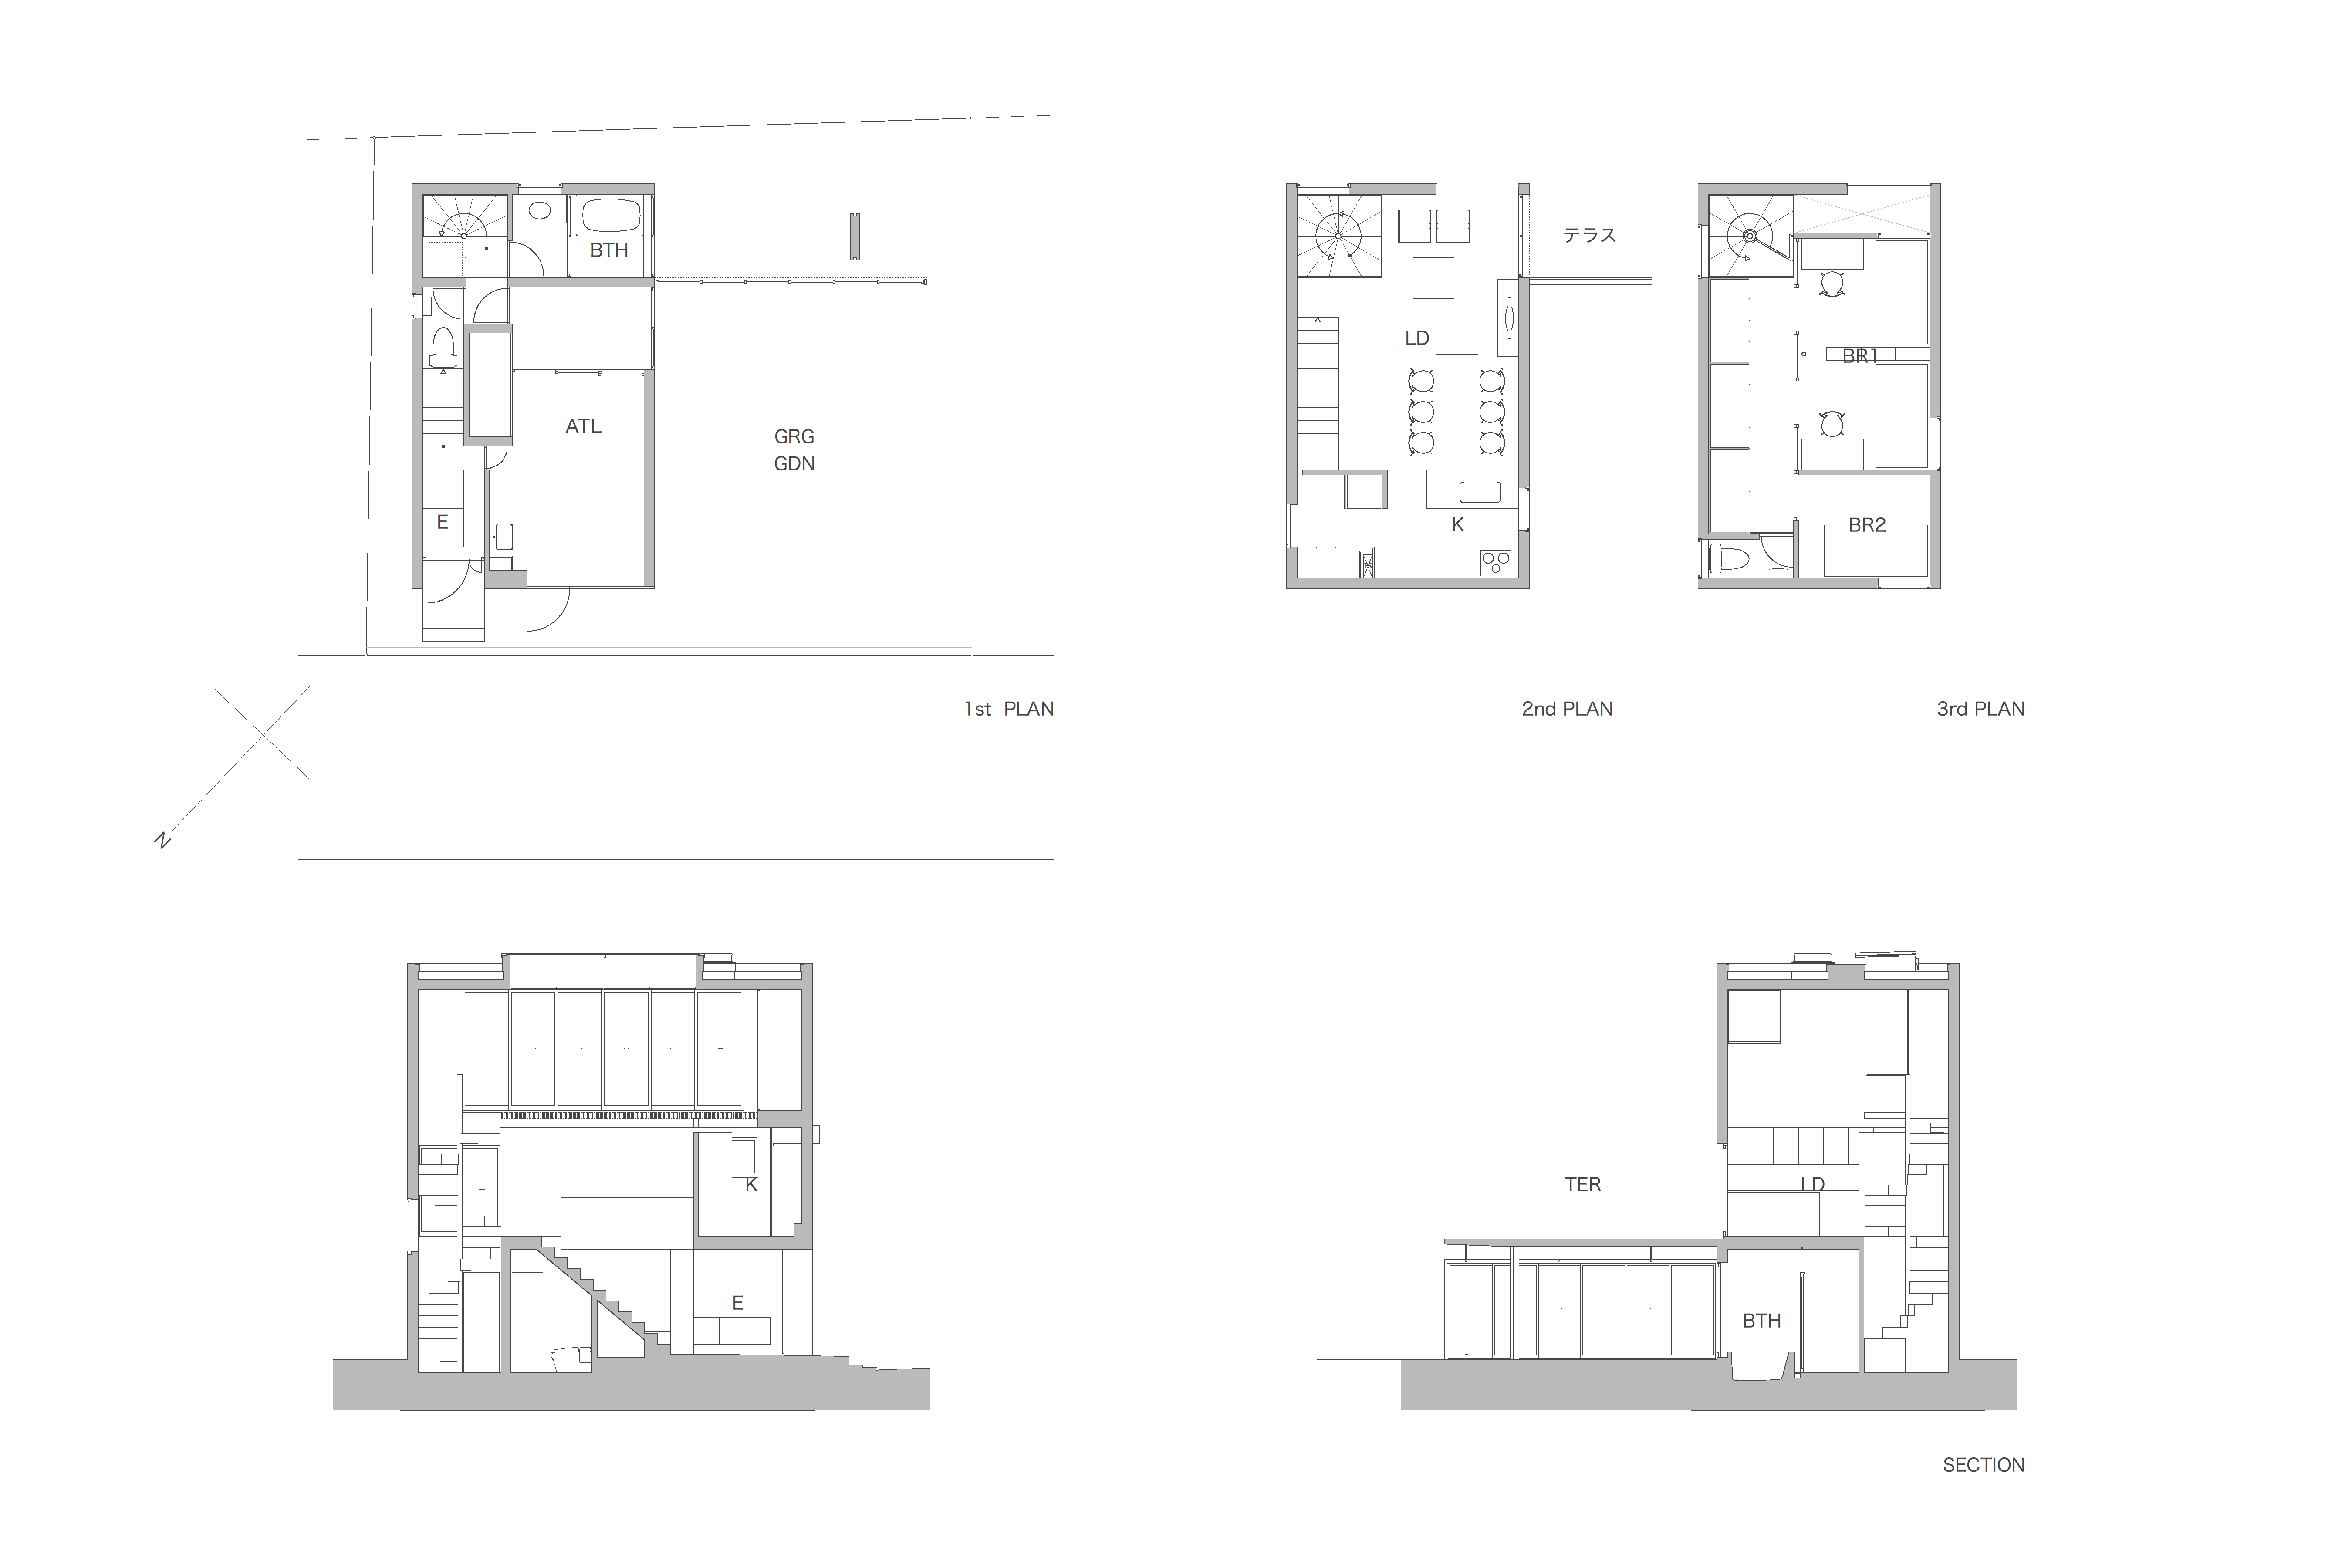 House in Kohgo Plan